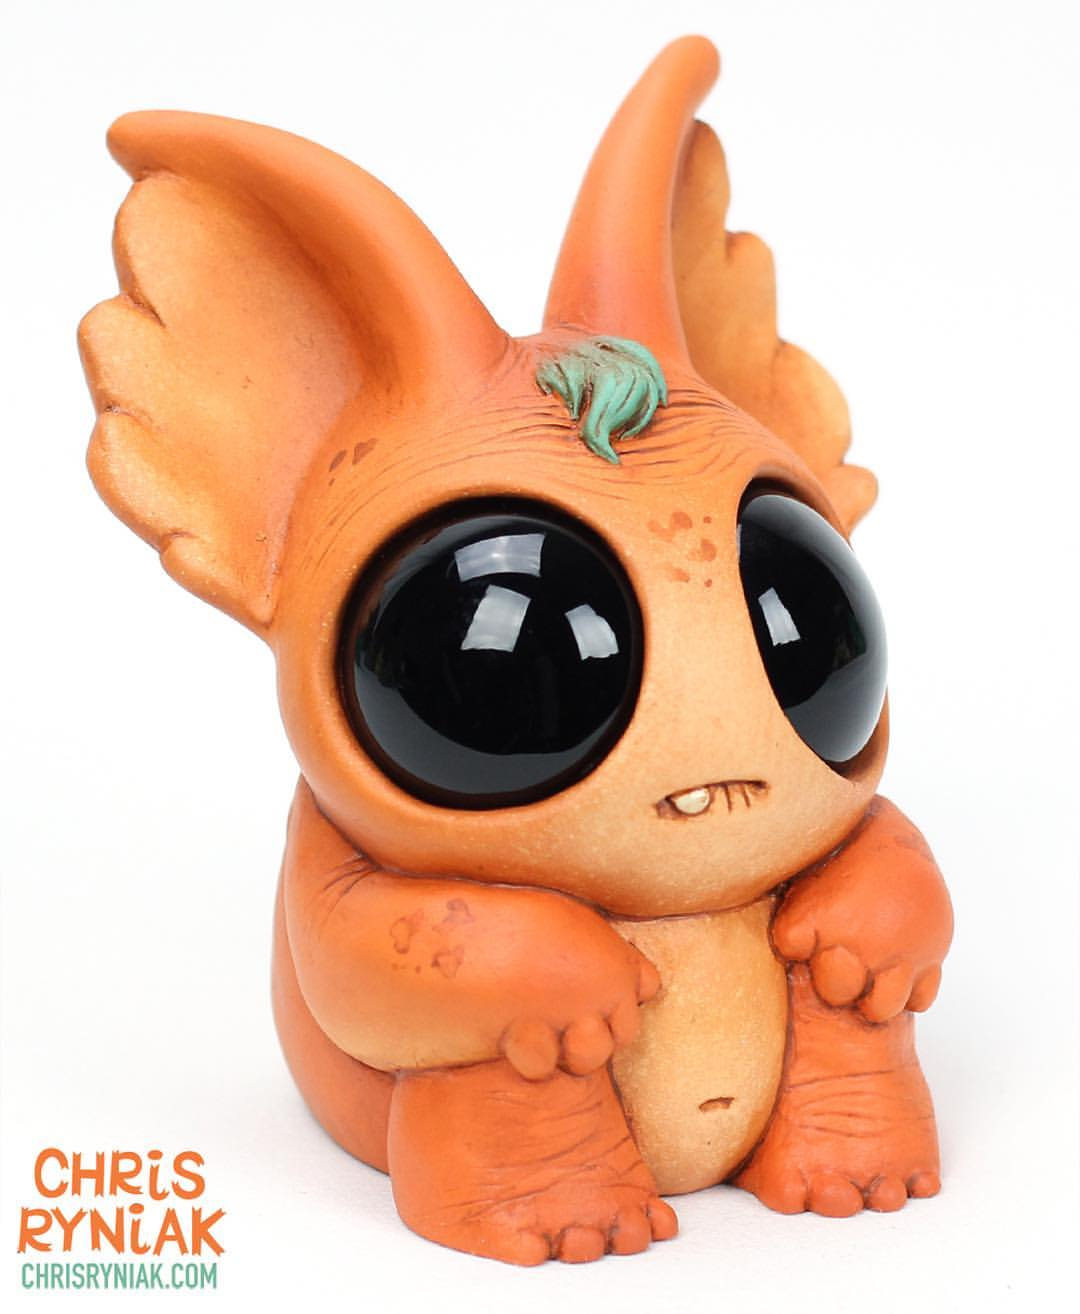 chris-ryniak-1